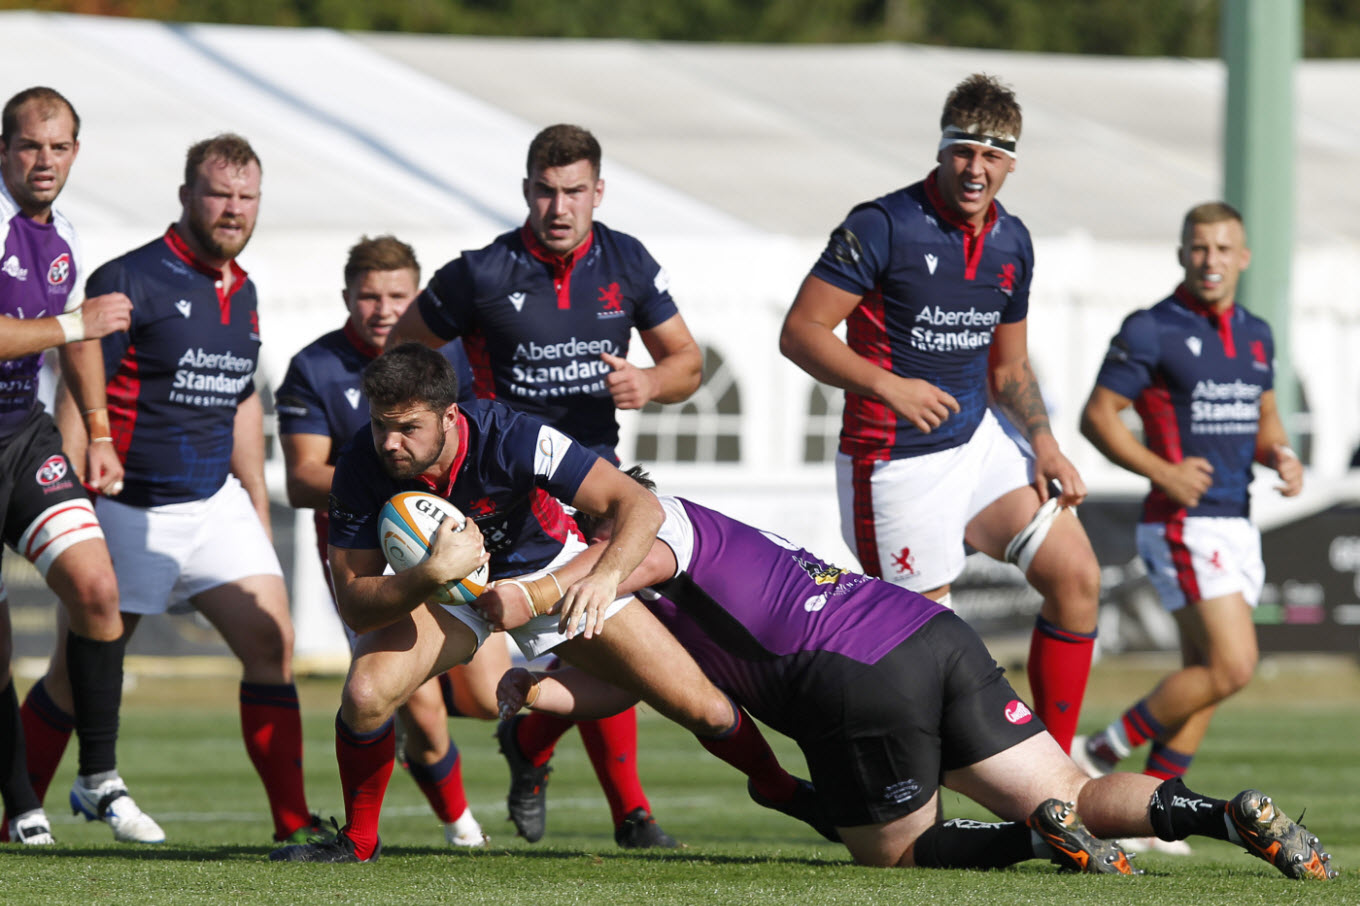 London Scottish RFC